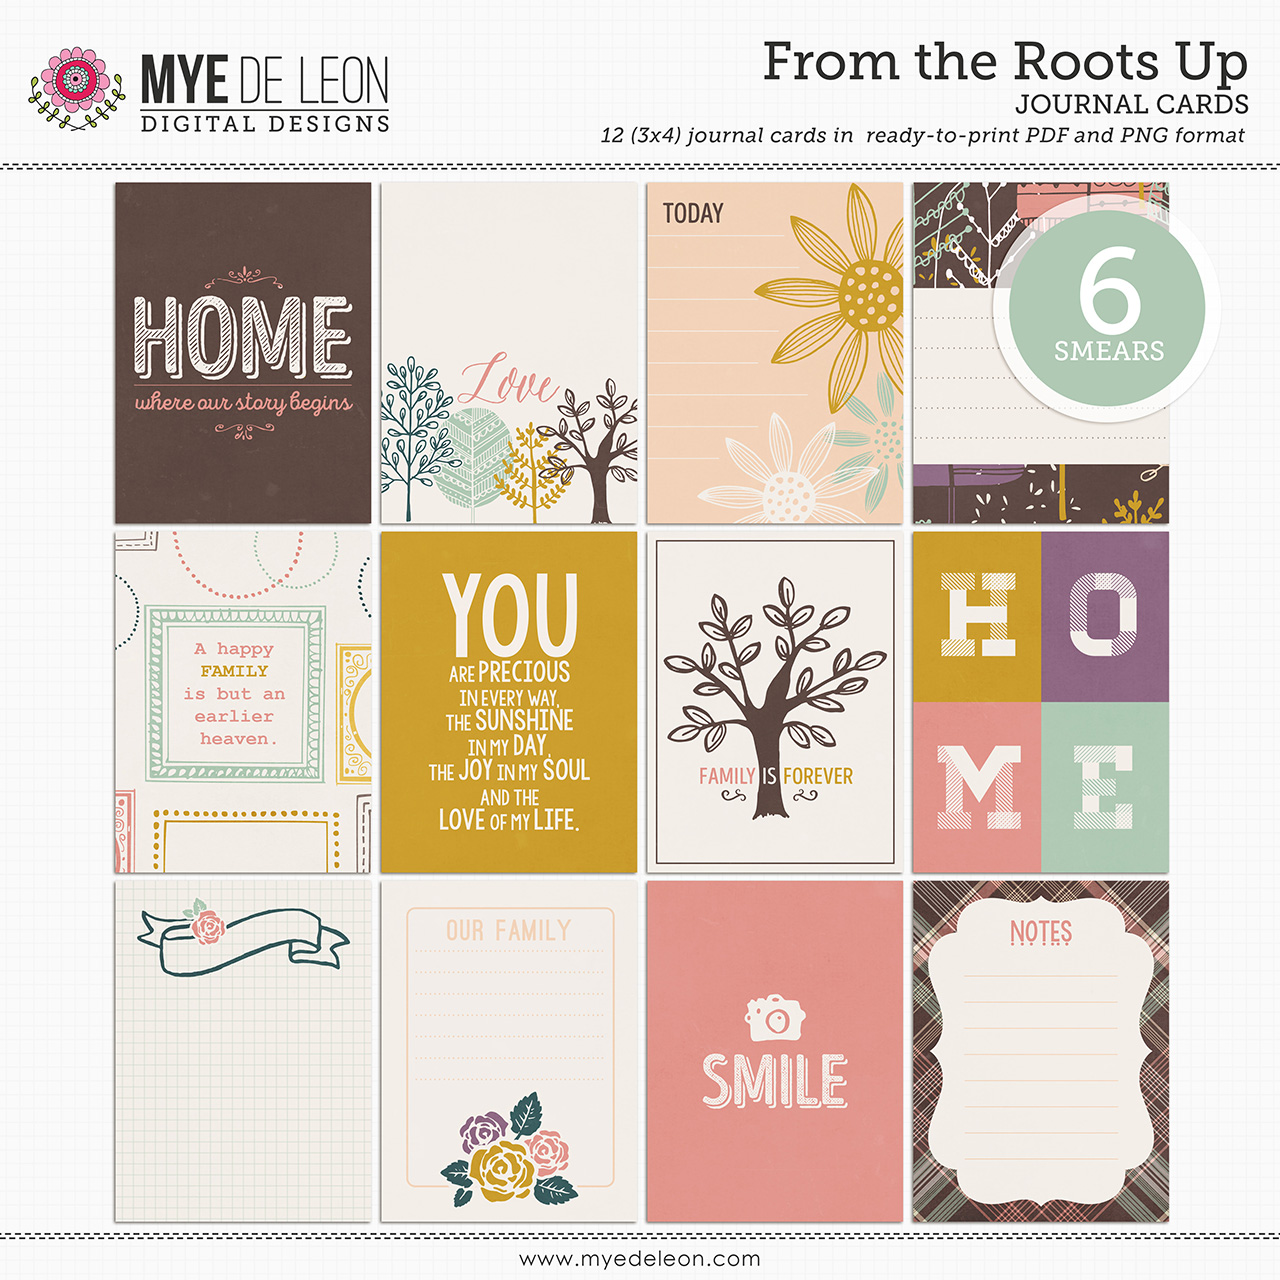 From the Roots Up   Journal Cards